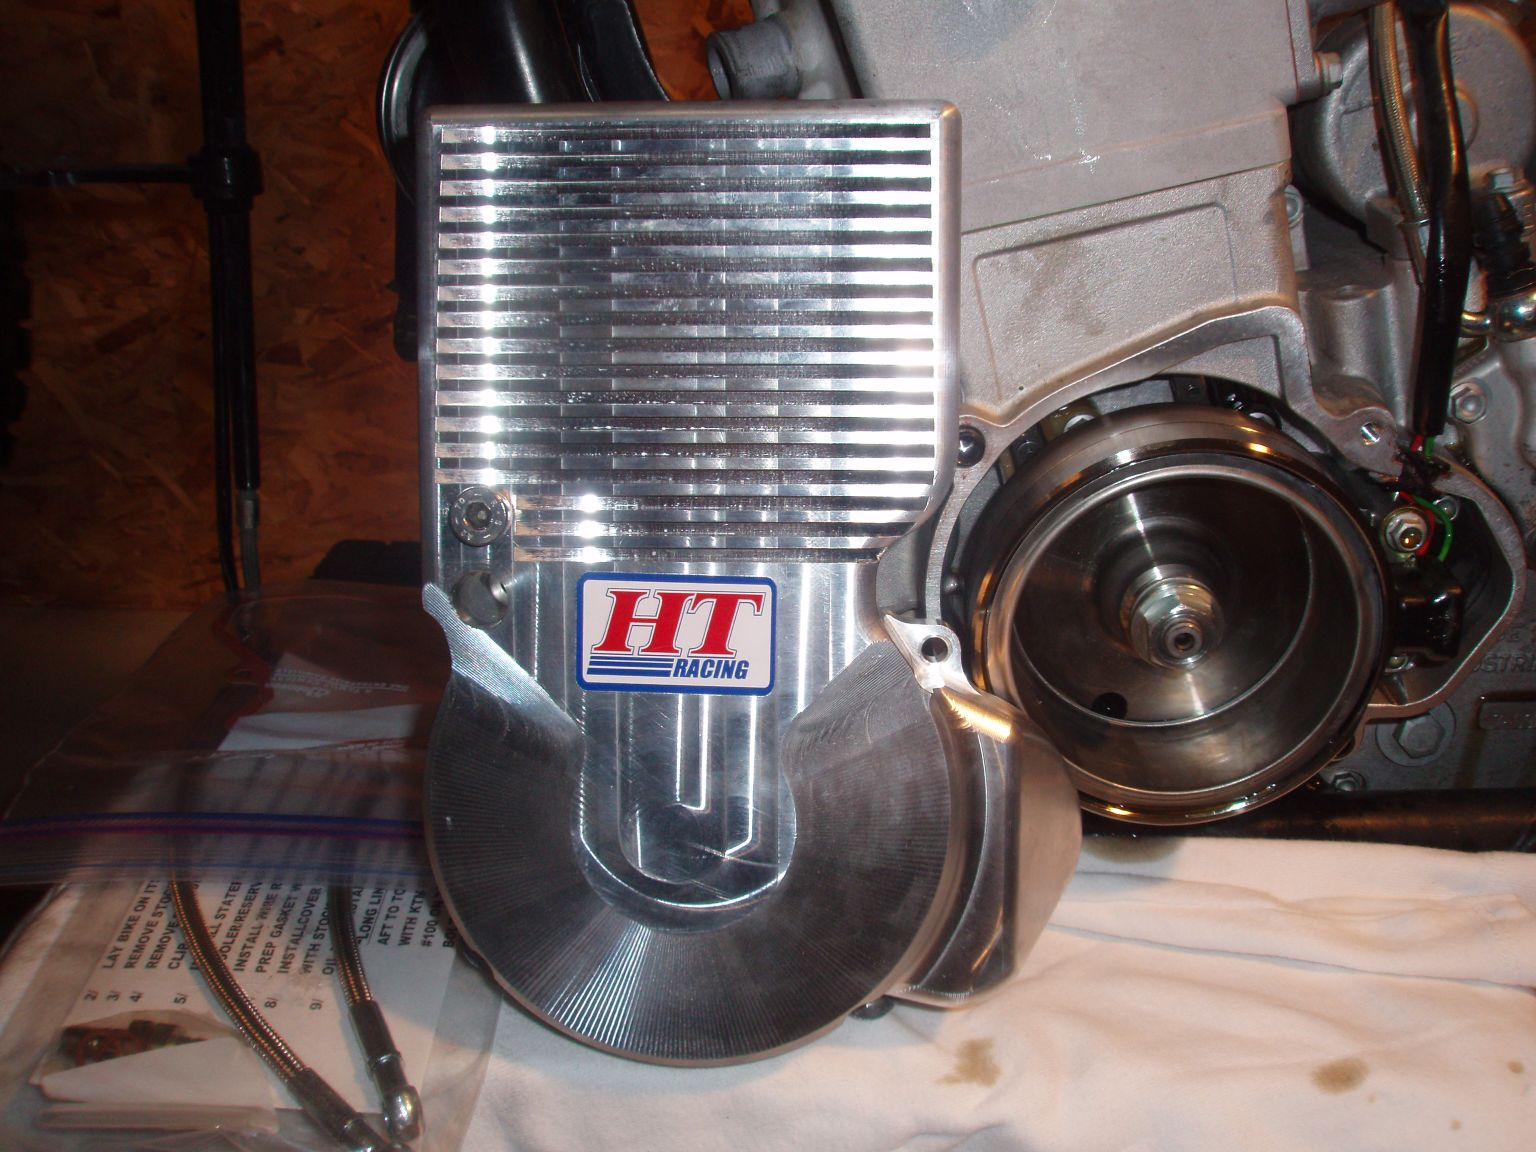 With the HT Oil Cooler the oil capacity is almost 2 quarts. Standard oil  capacity is 1.3 quarts of oil.